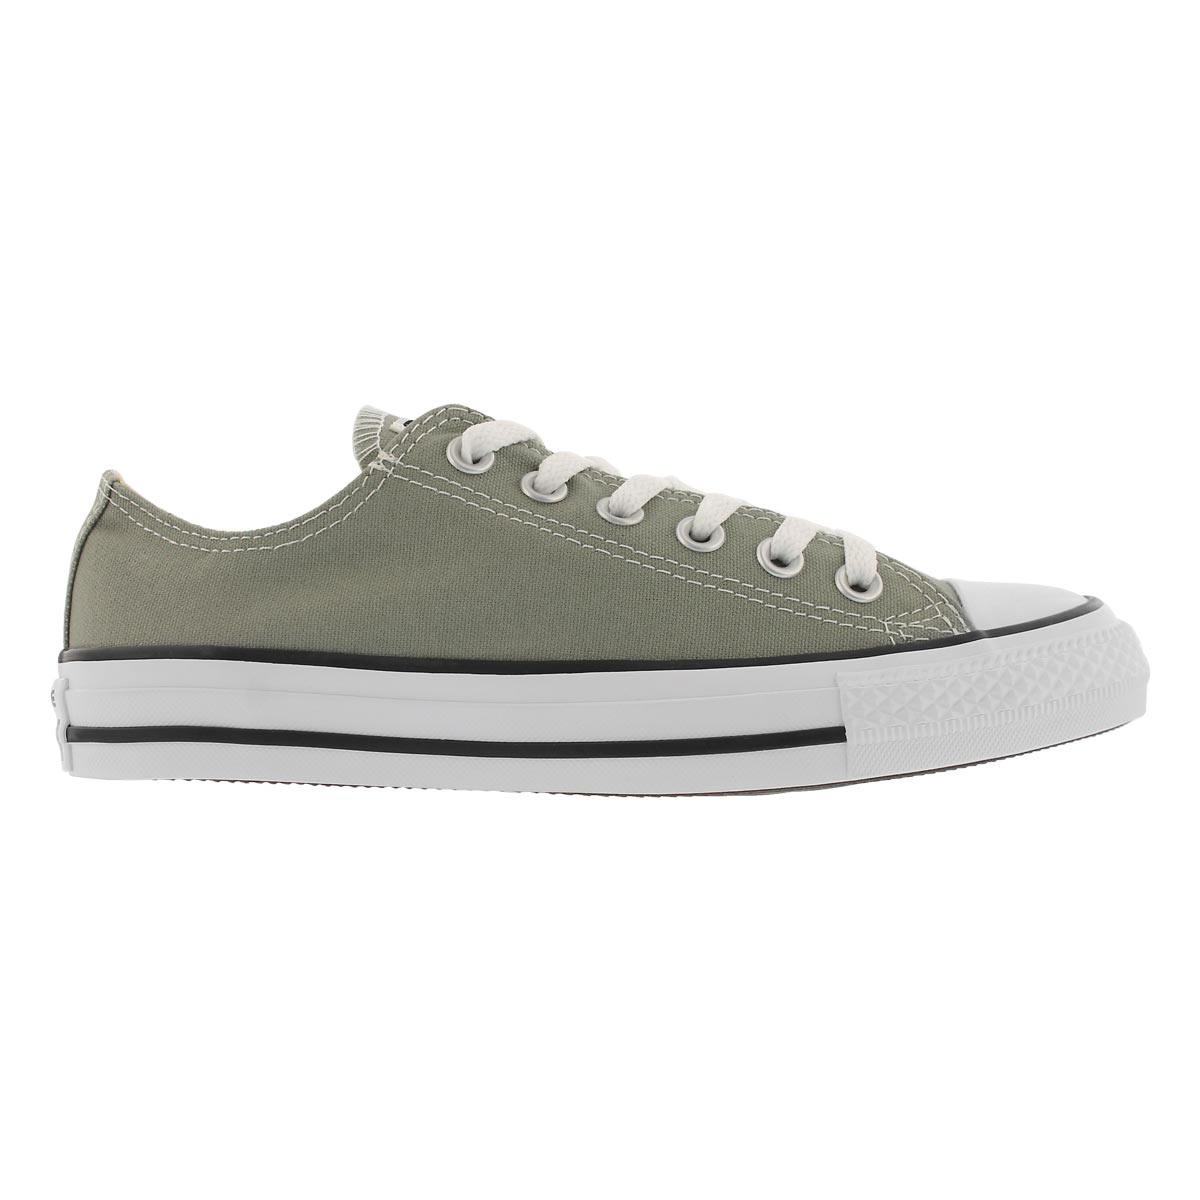 Lds CT AS Seasonal dk stucco sneaker